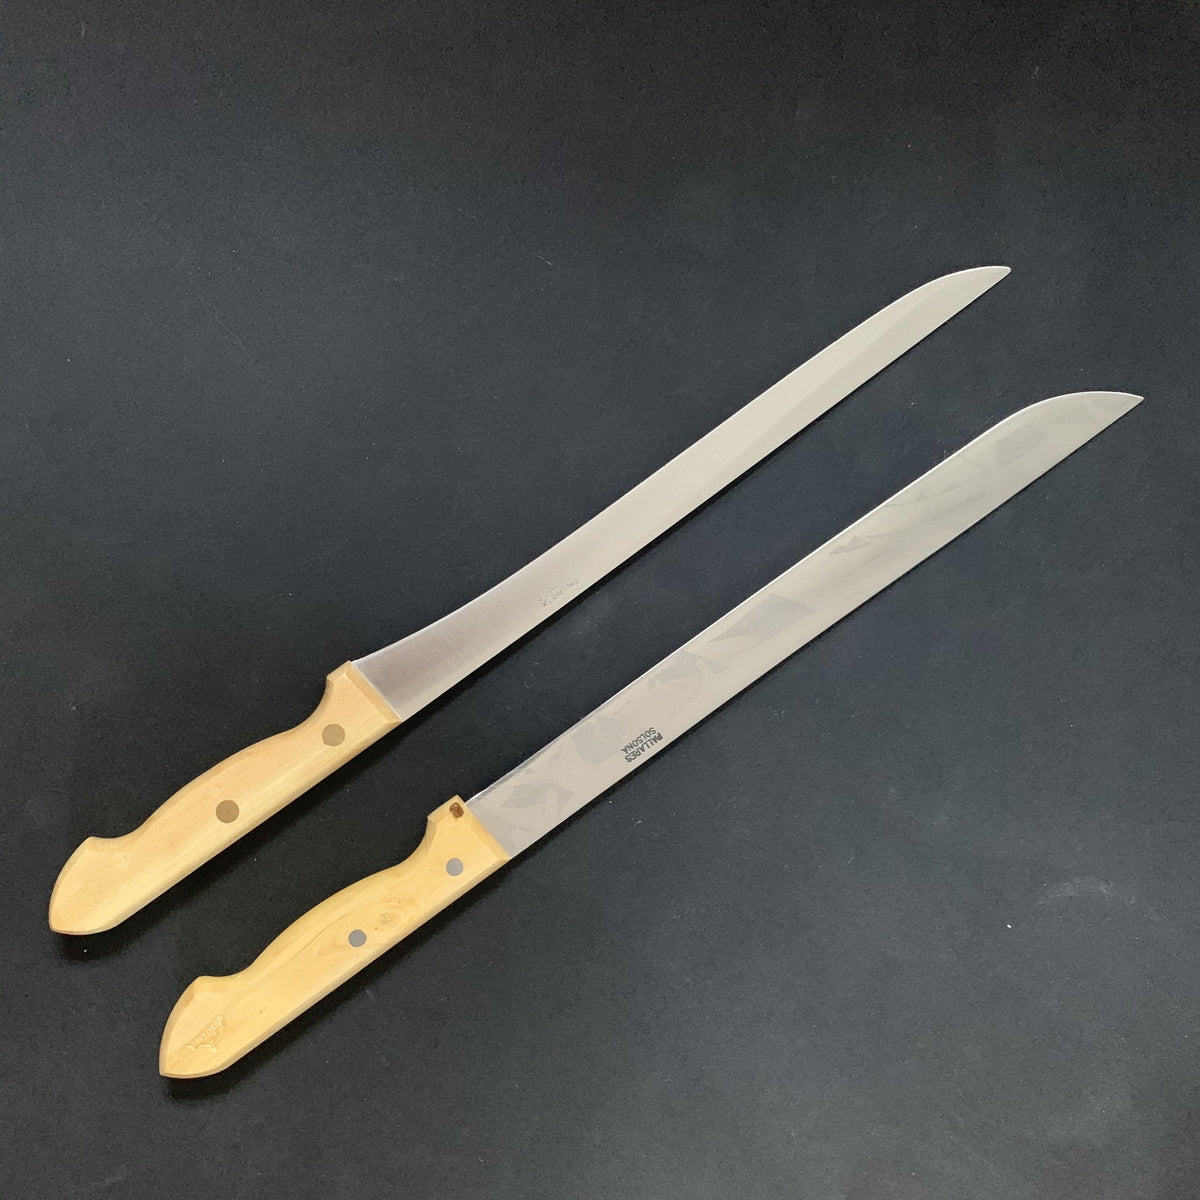 Jamon knife, carbon or stainless steel - Pallares